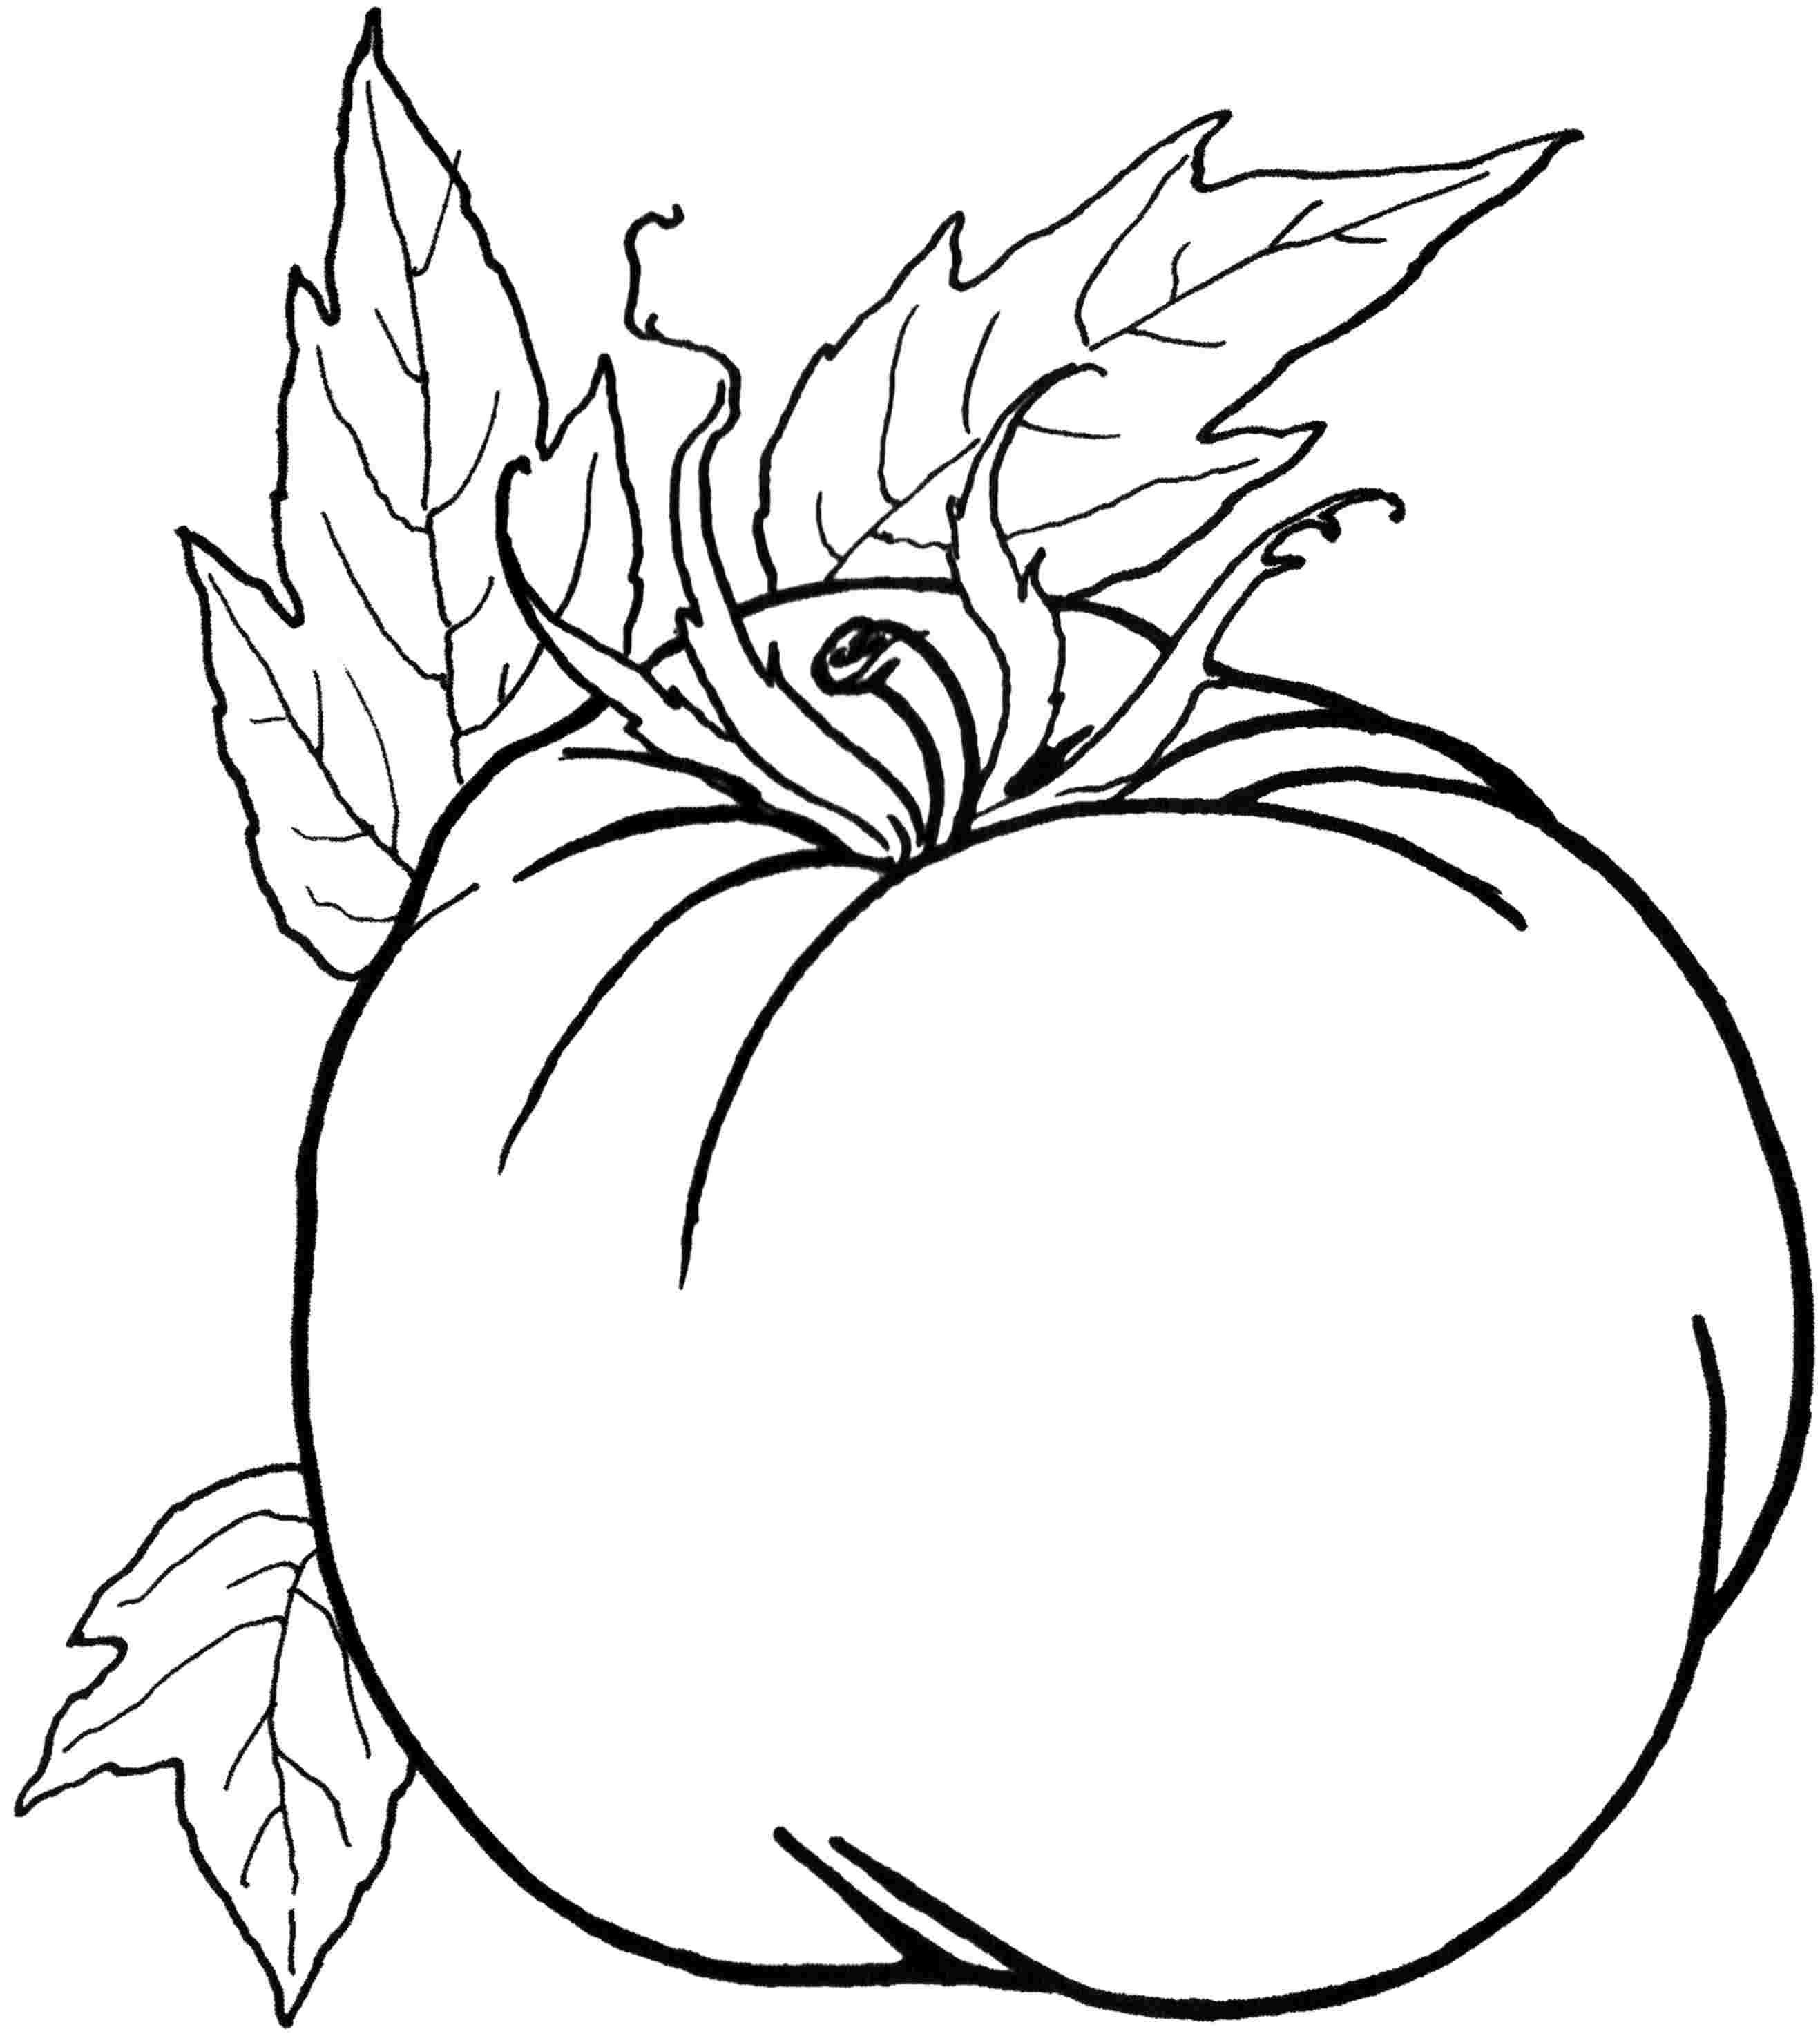 vegetables drawing for coloring green leafy vegetables clipart black and white 20 free drawing coloring vegetables for